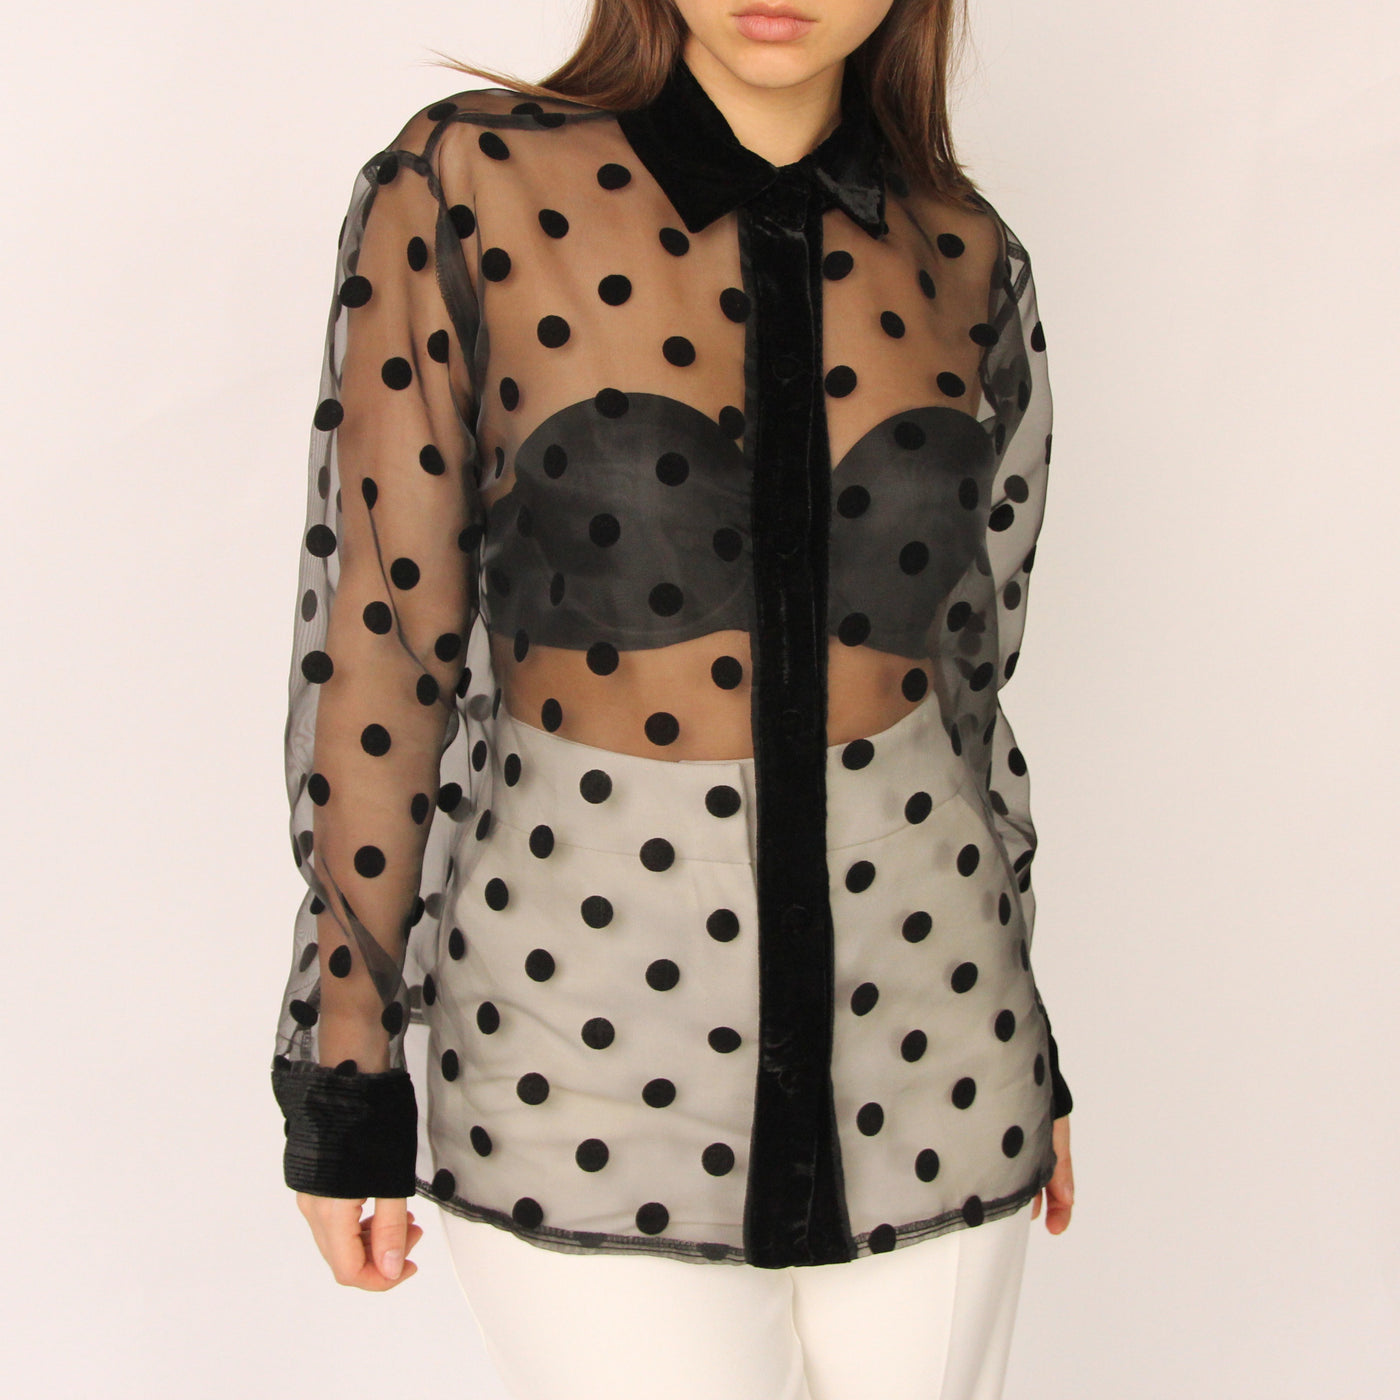 Black Polka Dot Blouse - Marble Hive